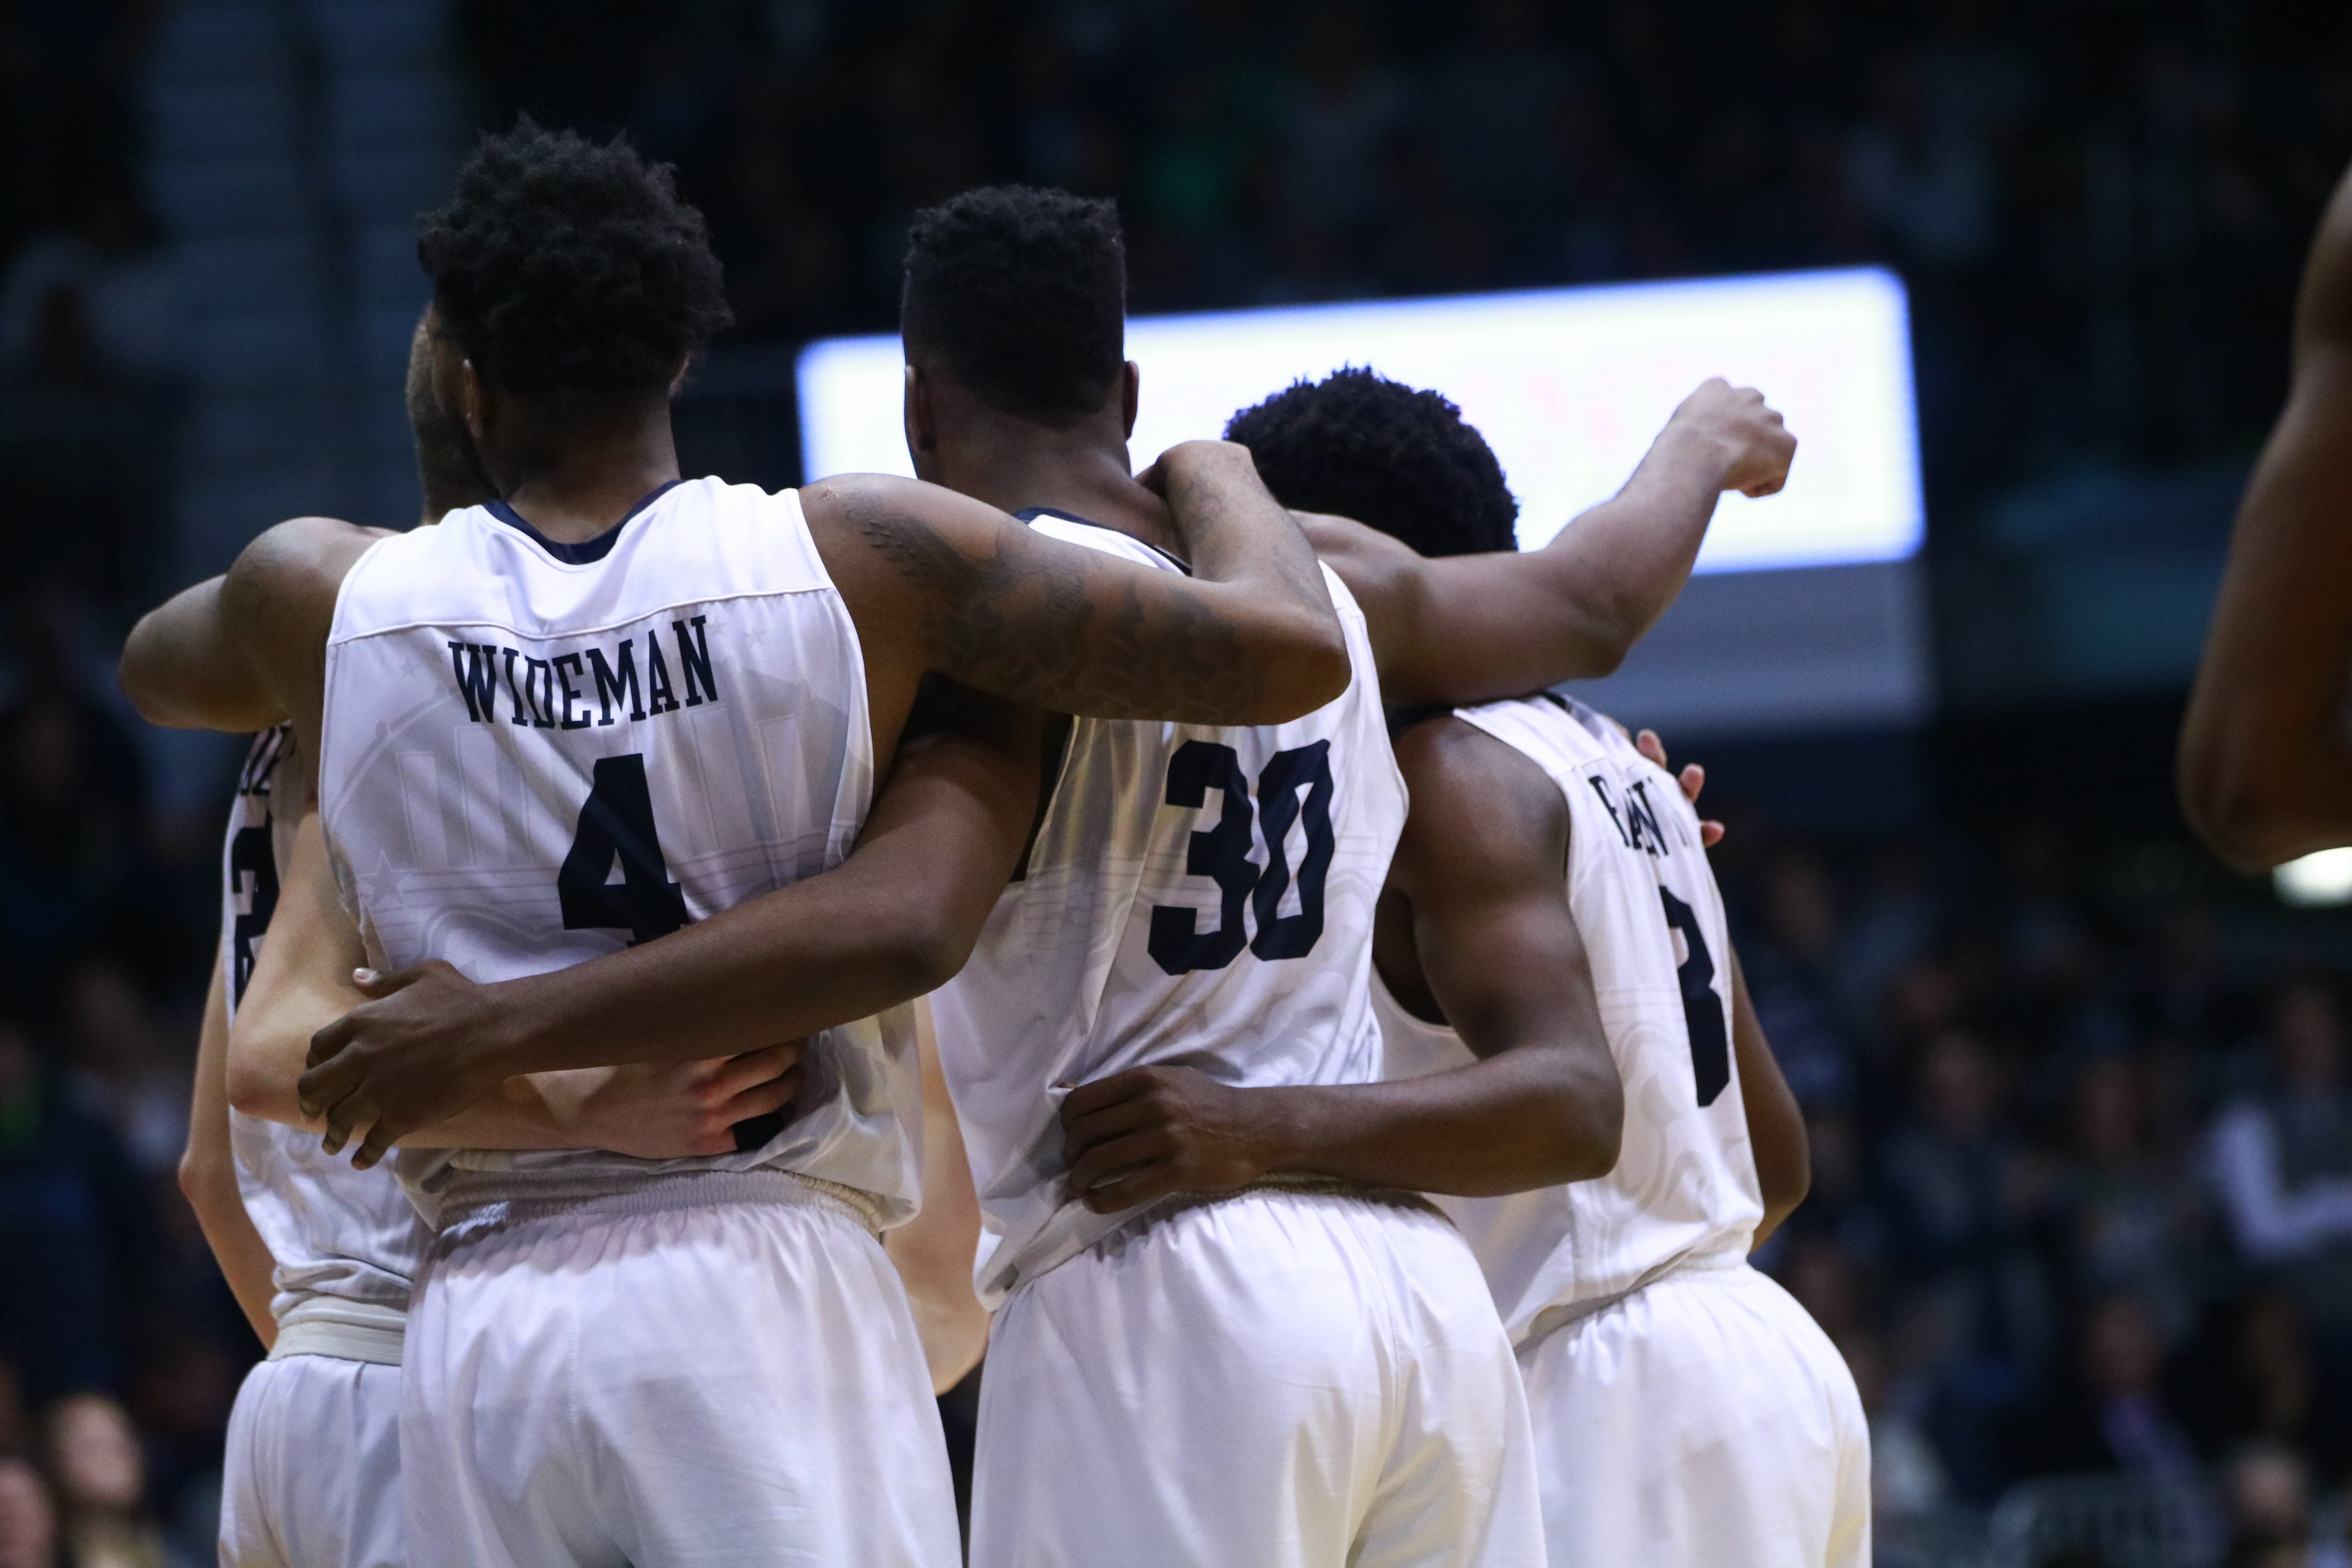 Butler fans storm the court after unranked Bulldogs upset No. 1 Villanova